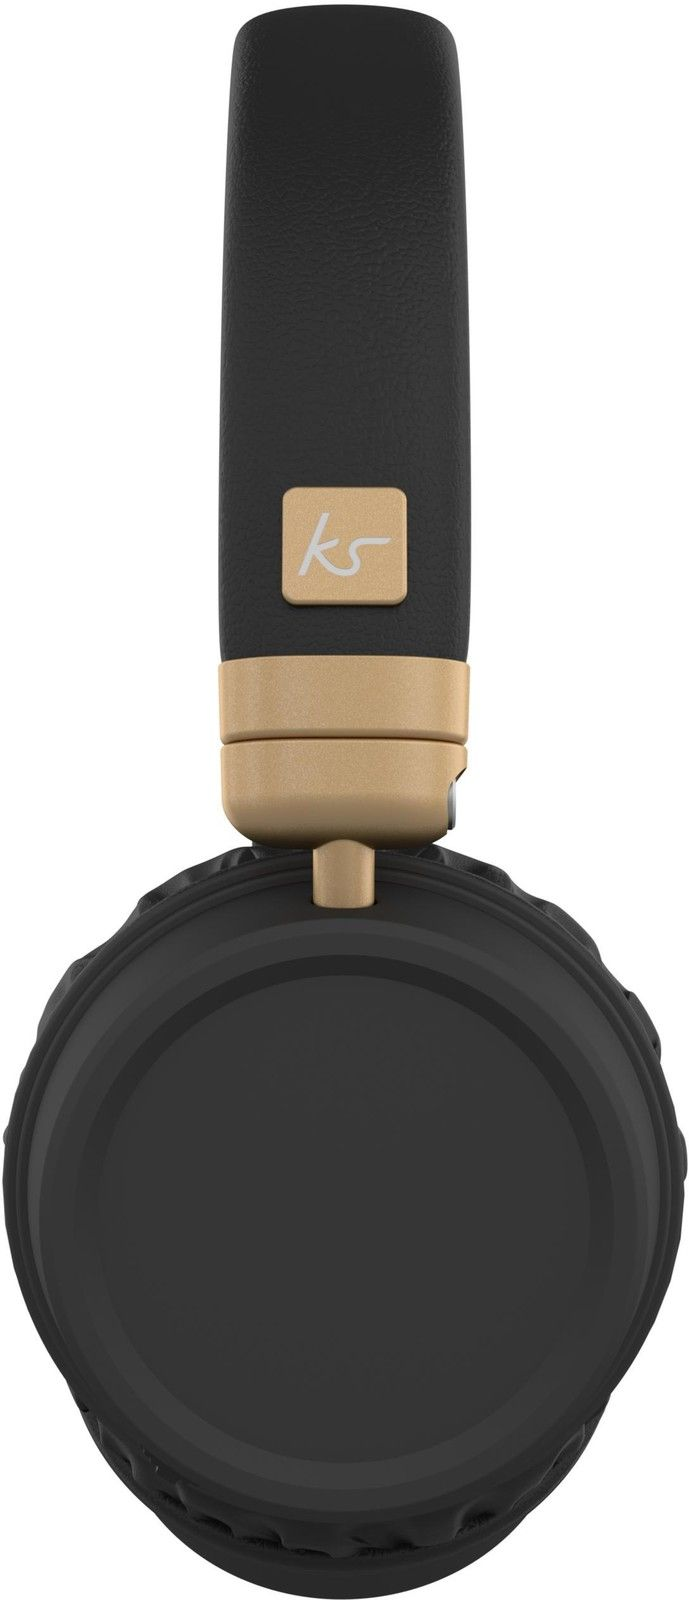 Kitsound Harlem Wireless Headphones